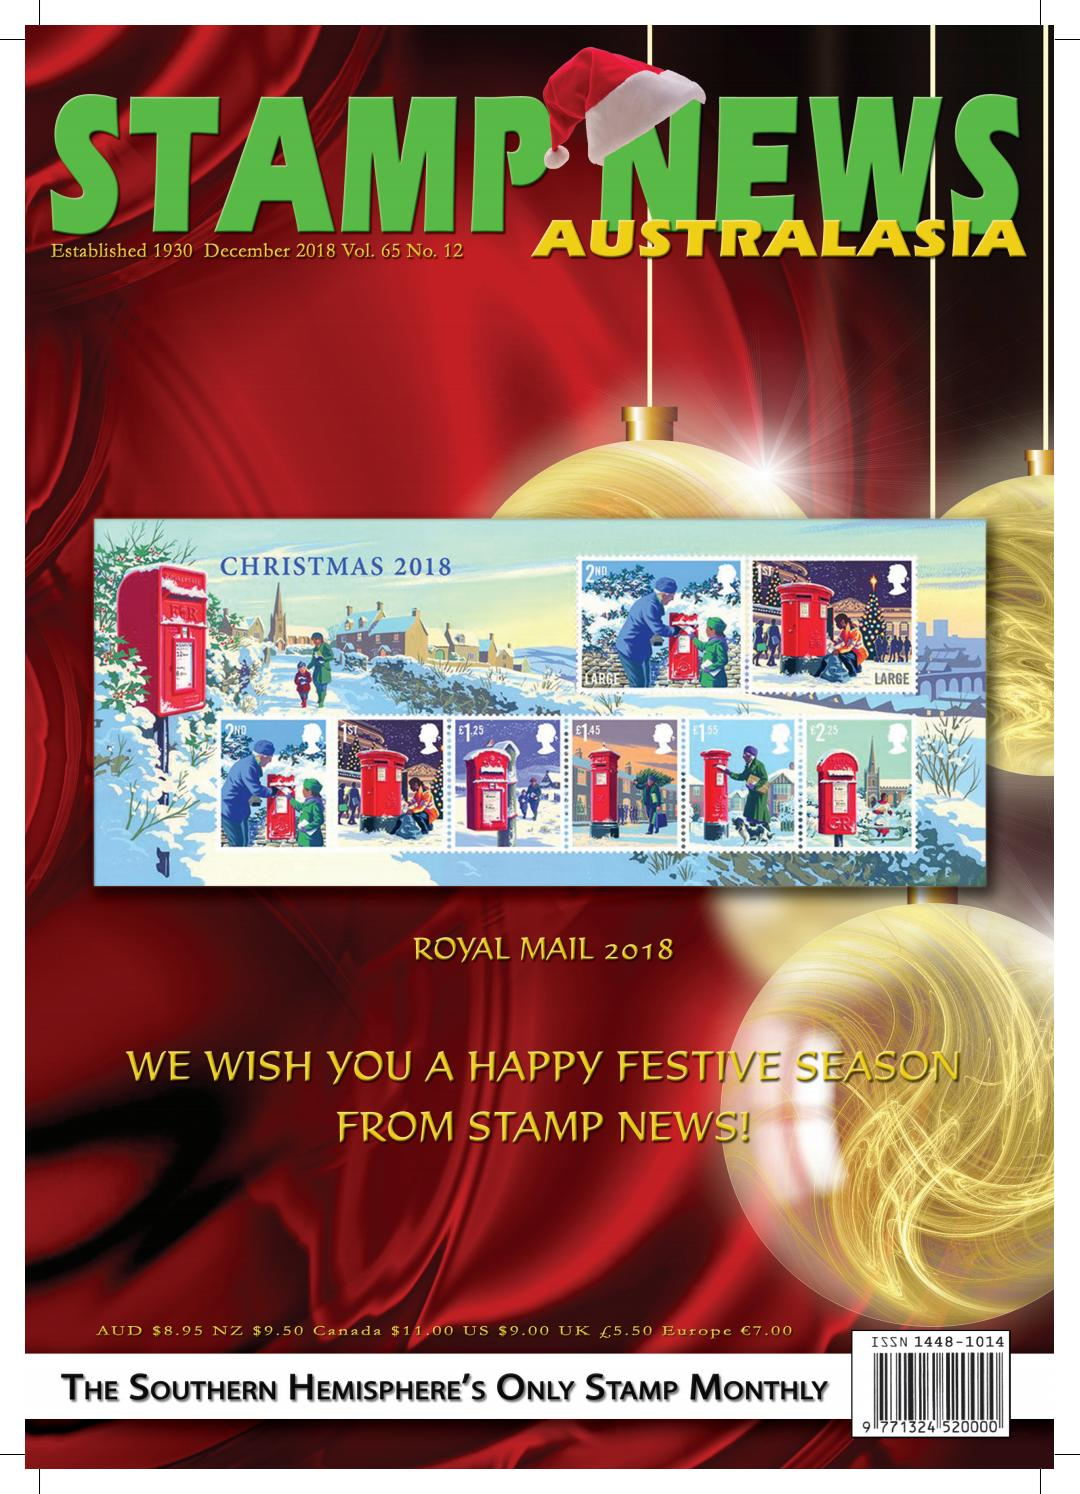 stamp news australasia december 2018 by stamp news  fu%c3%83%c2%9fball jacken c 32 #5